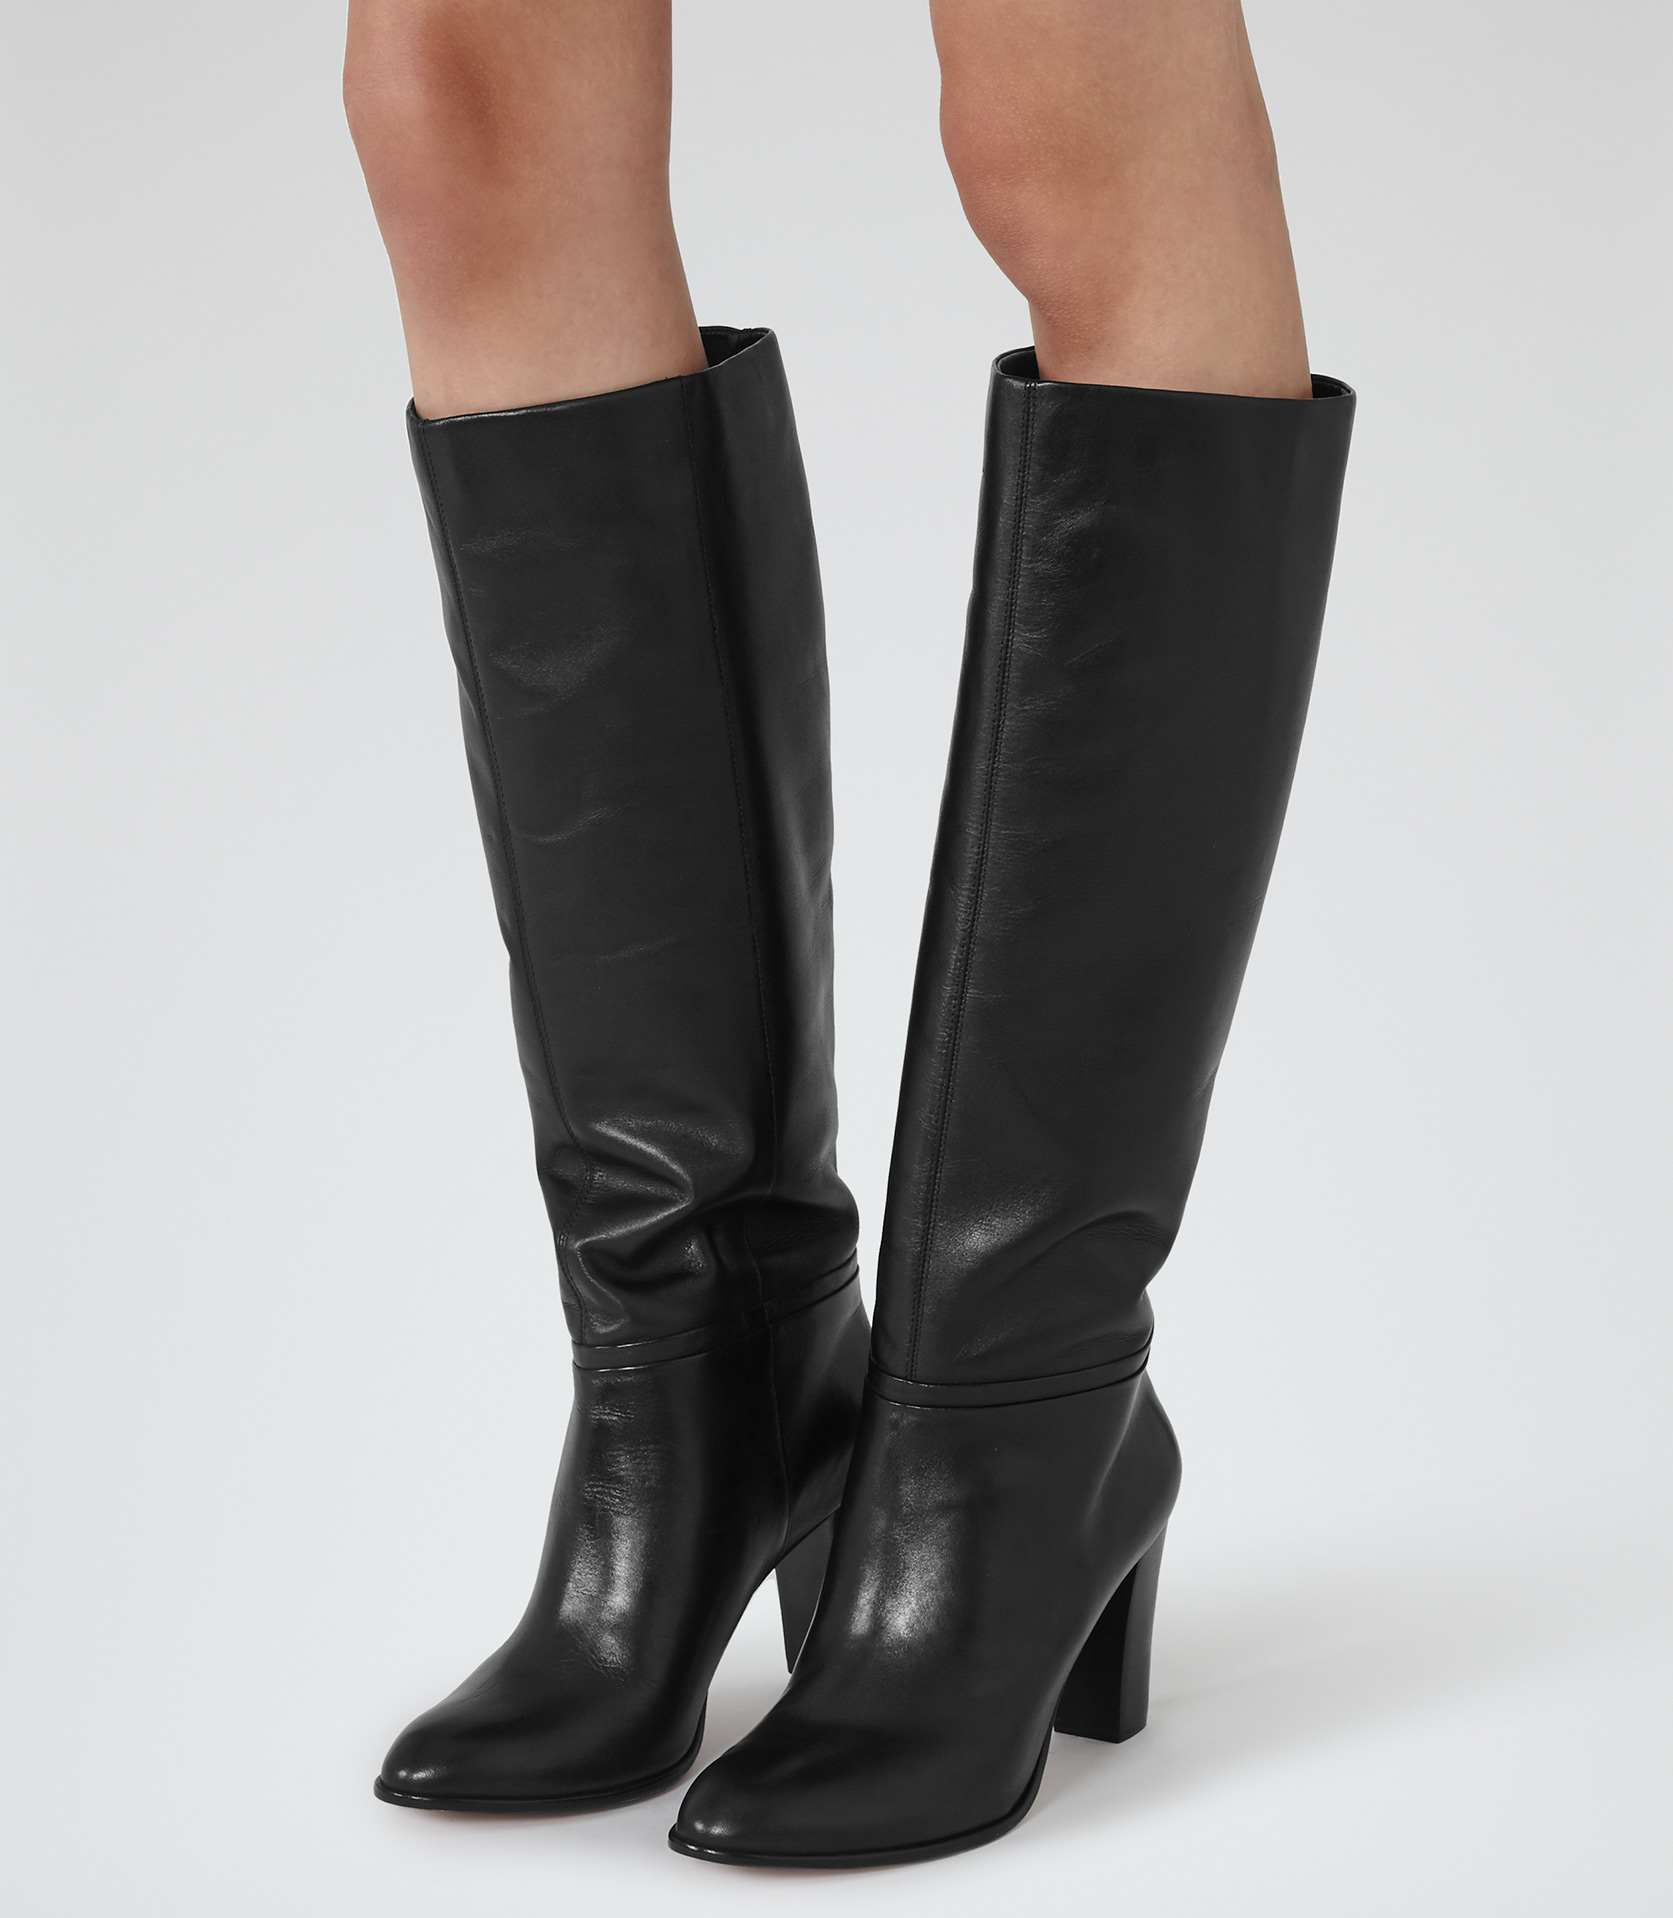 Lyst - Reiss Andi Knee-High Leather Boots In Black-4278